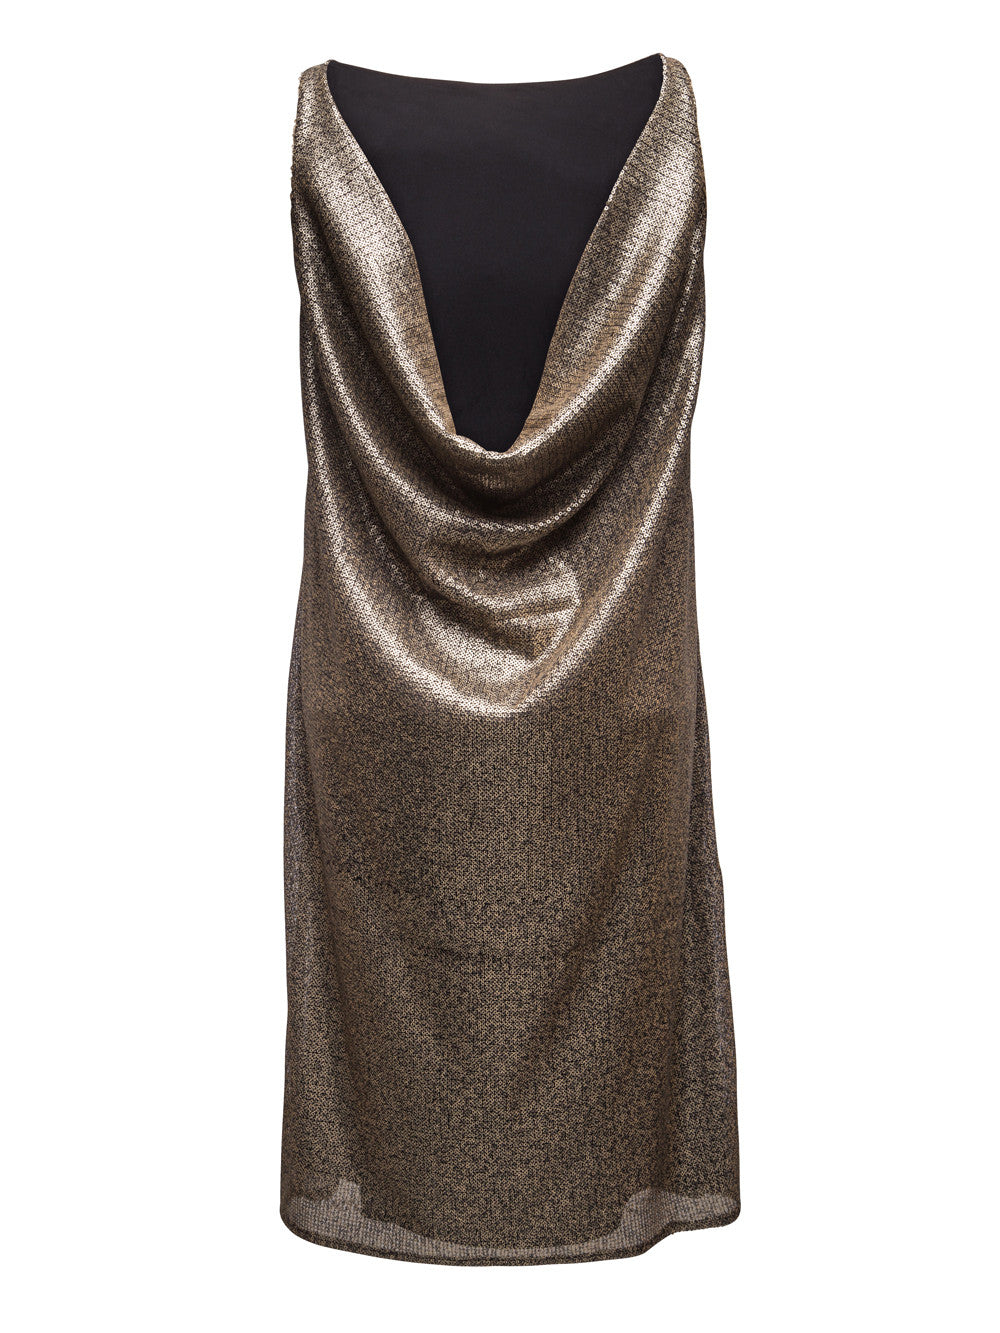 CLOSE TO HEAVEN SEQUIN DRESS - Little Joe Woman by Gail Elliott E-Boutique  - 6